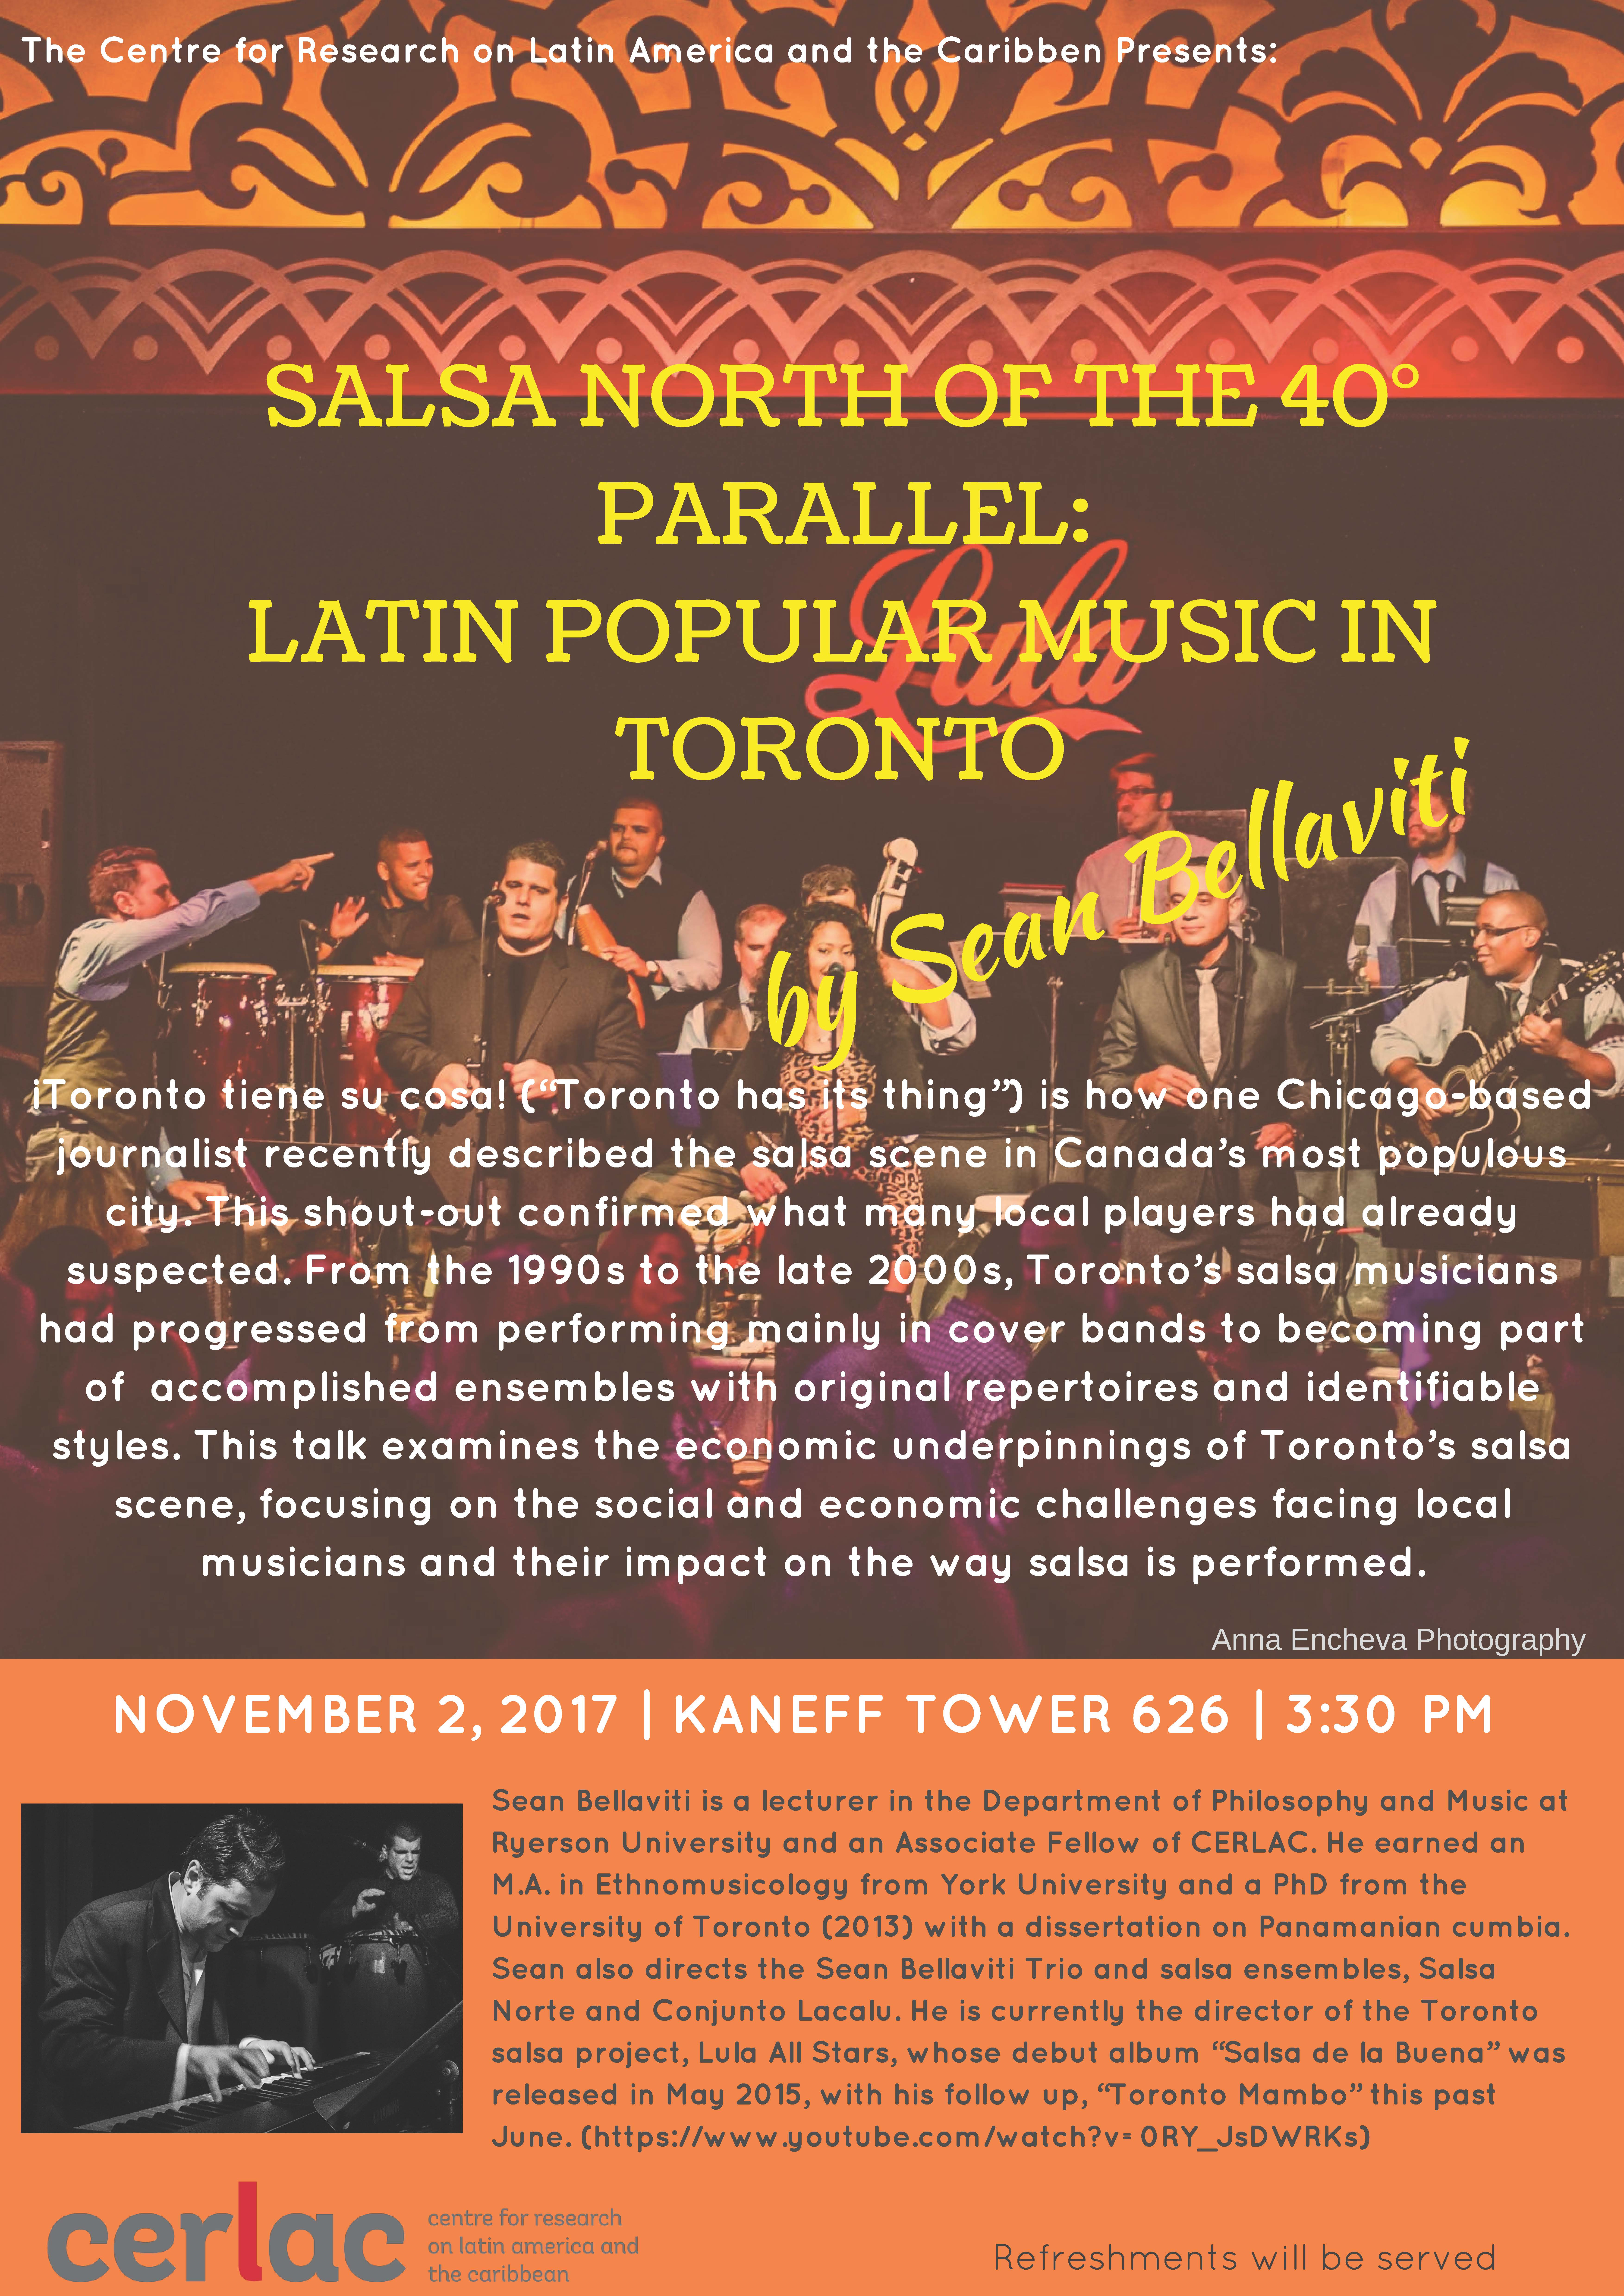 Salsa North of the 40° Parallel: Latin Popular Music in Toronto @ Kaneff Tower 626